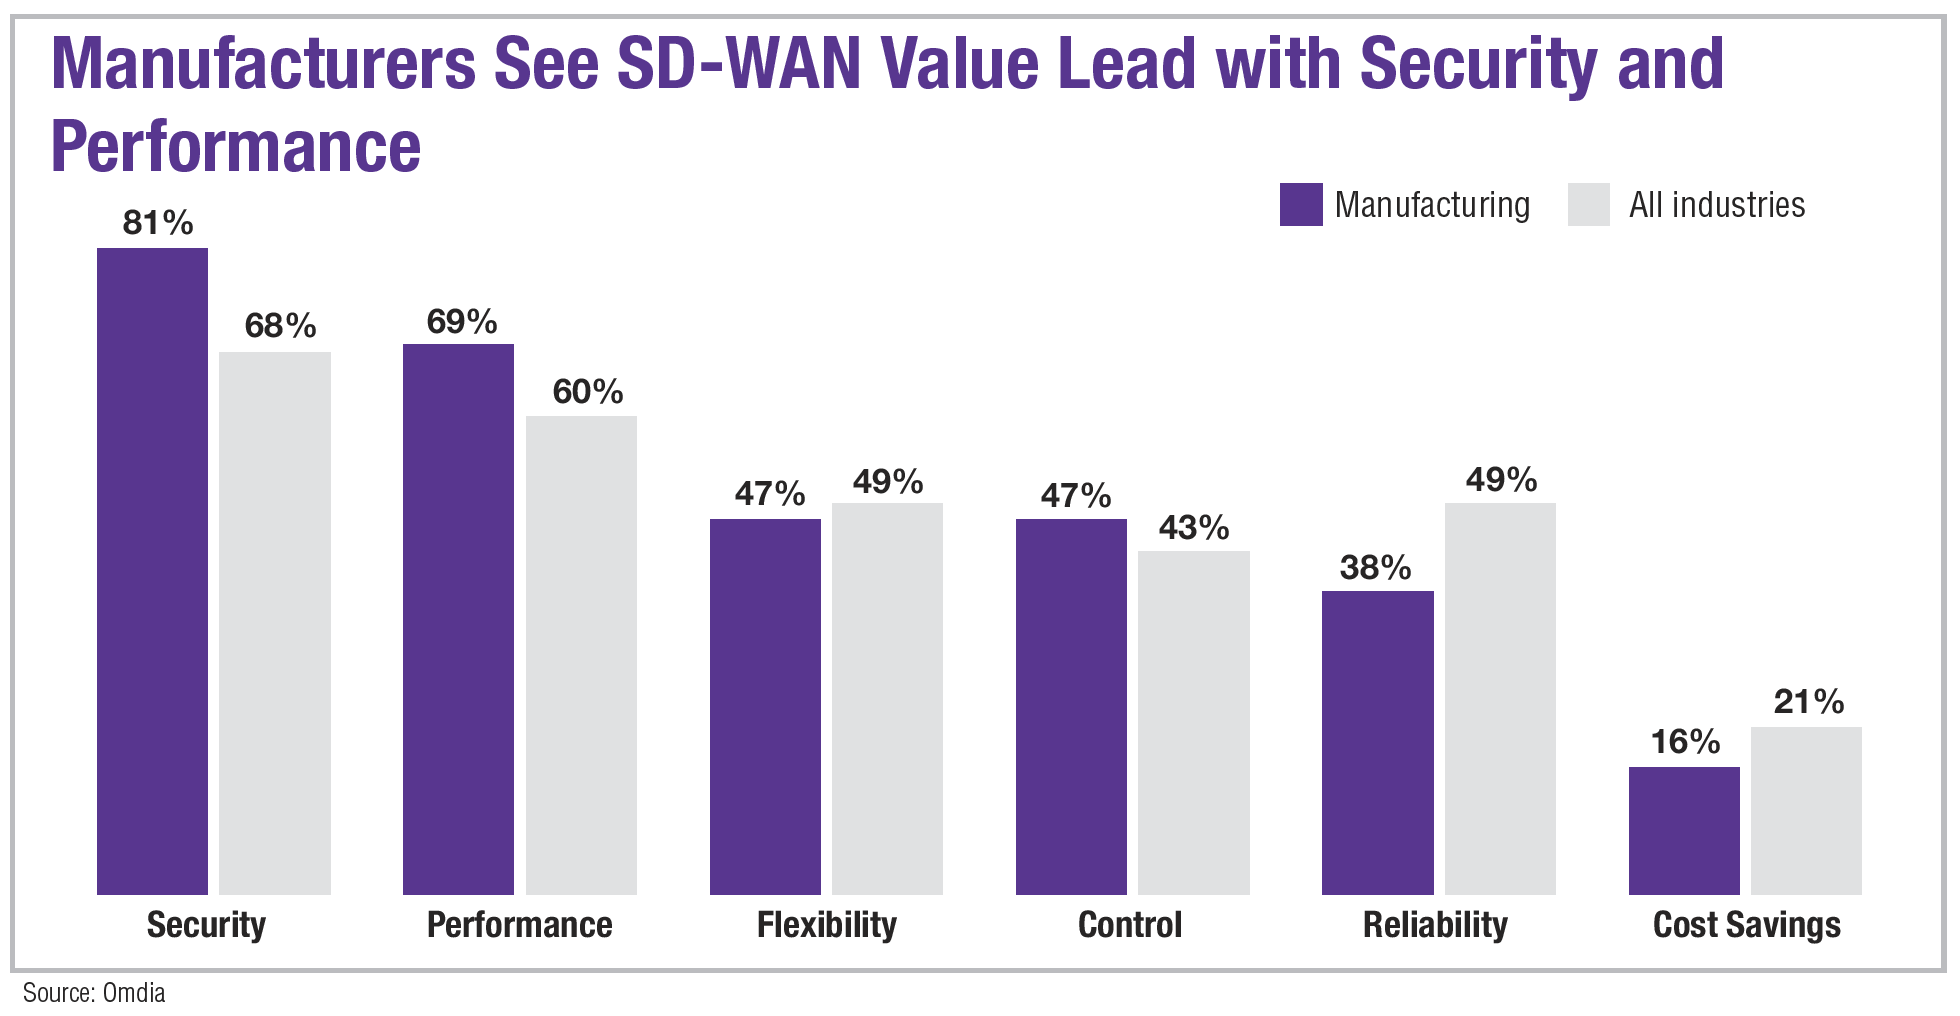 Manufacturers See SD-WAN Value Lead with Security and Performance